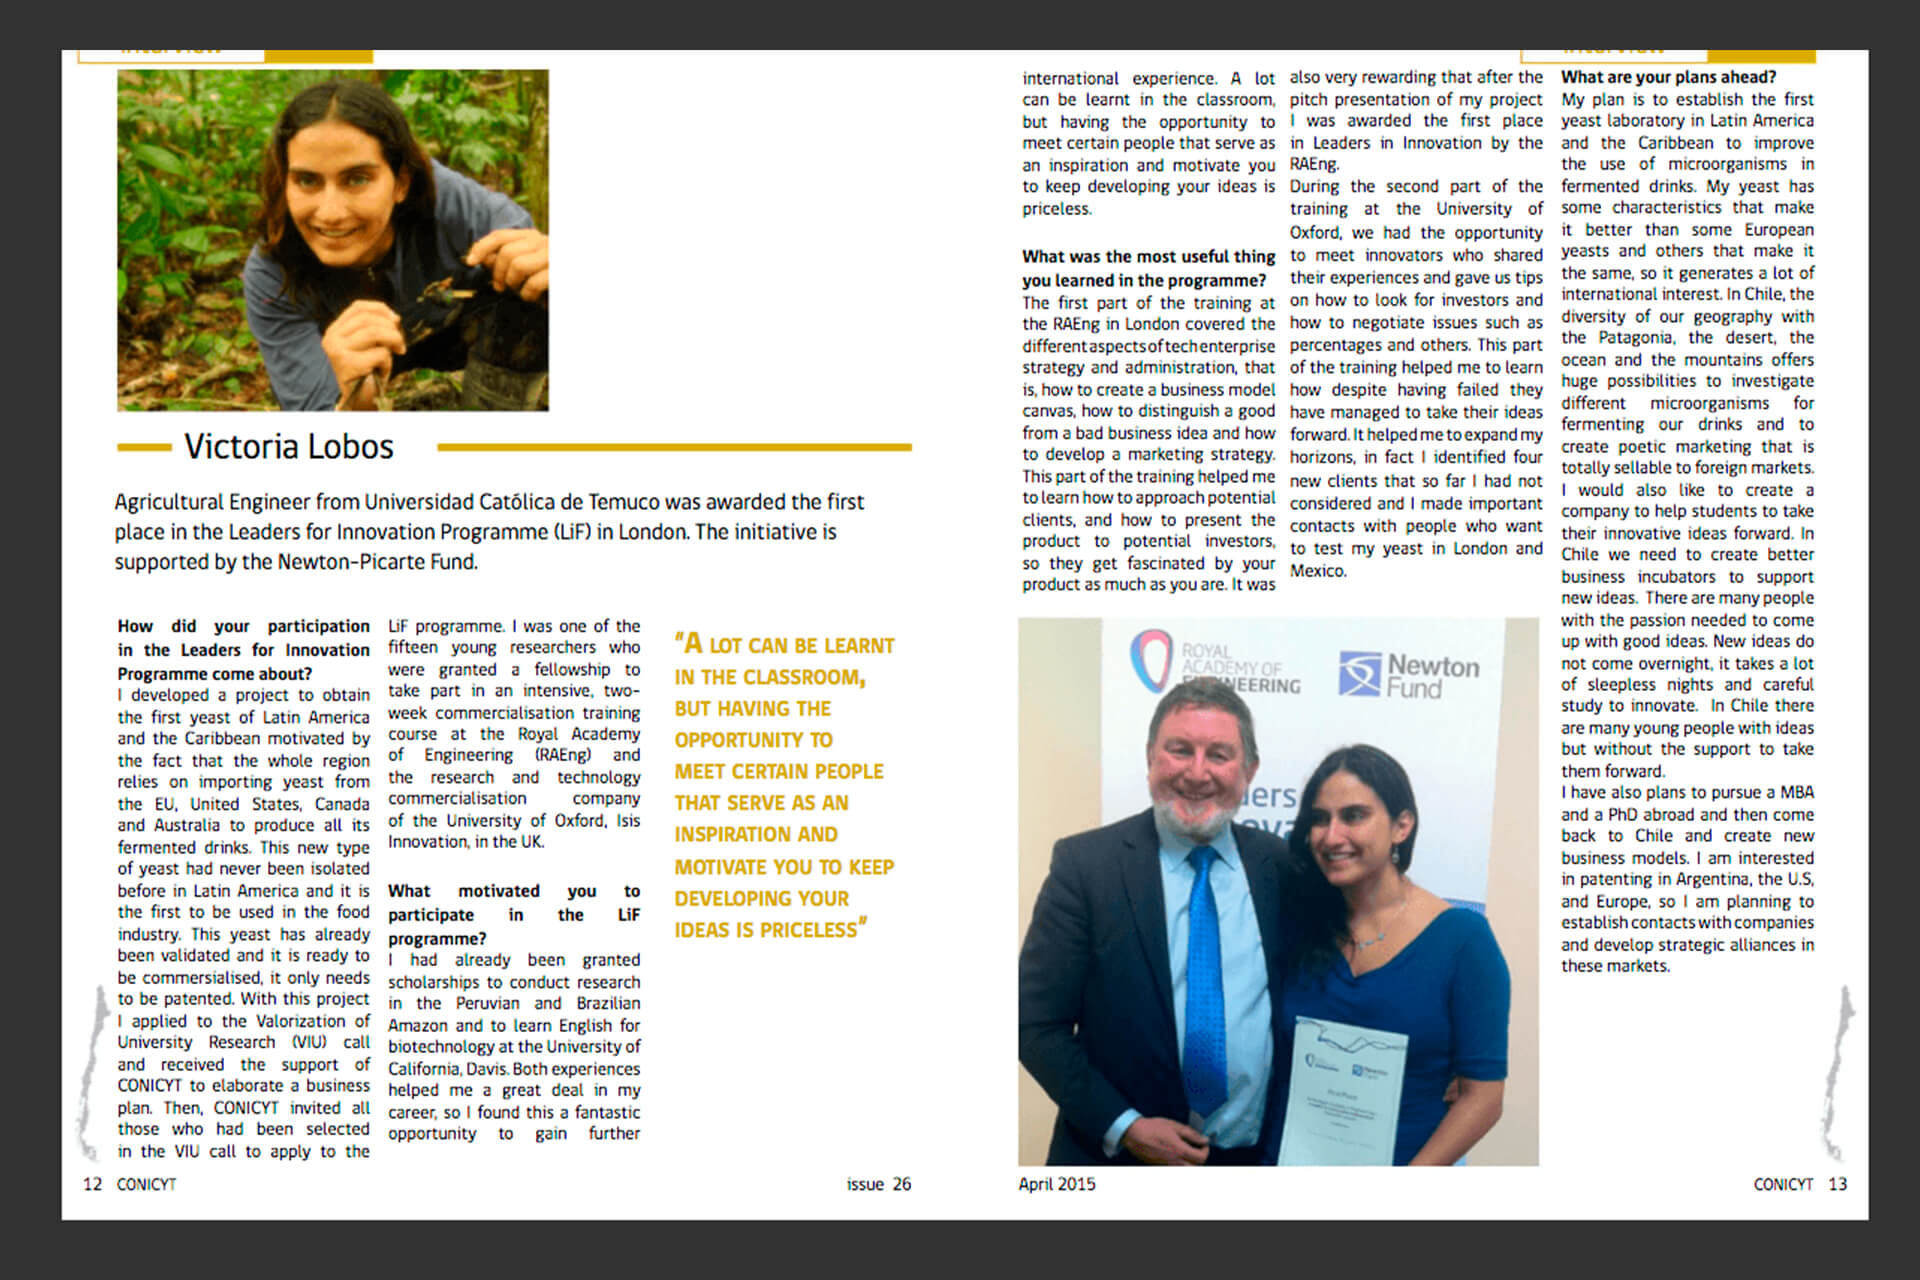 minarticle-quarterly-newsletter-of-the-international-cooperation-programme-at-CONICYT